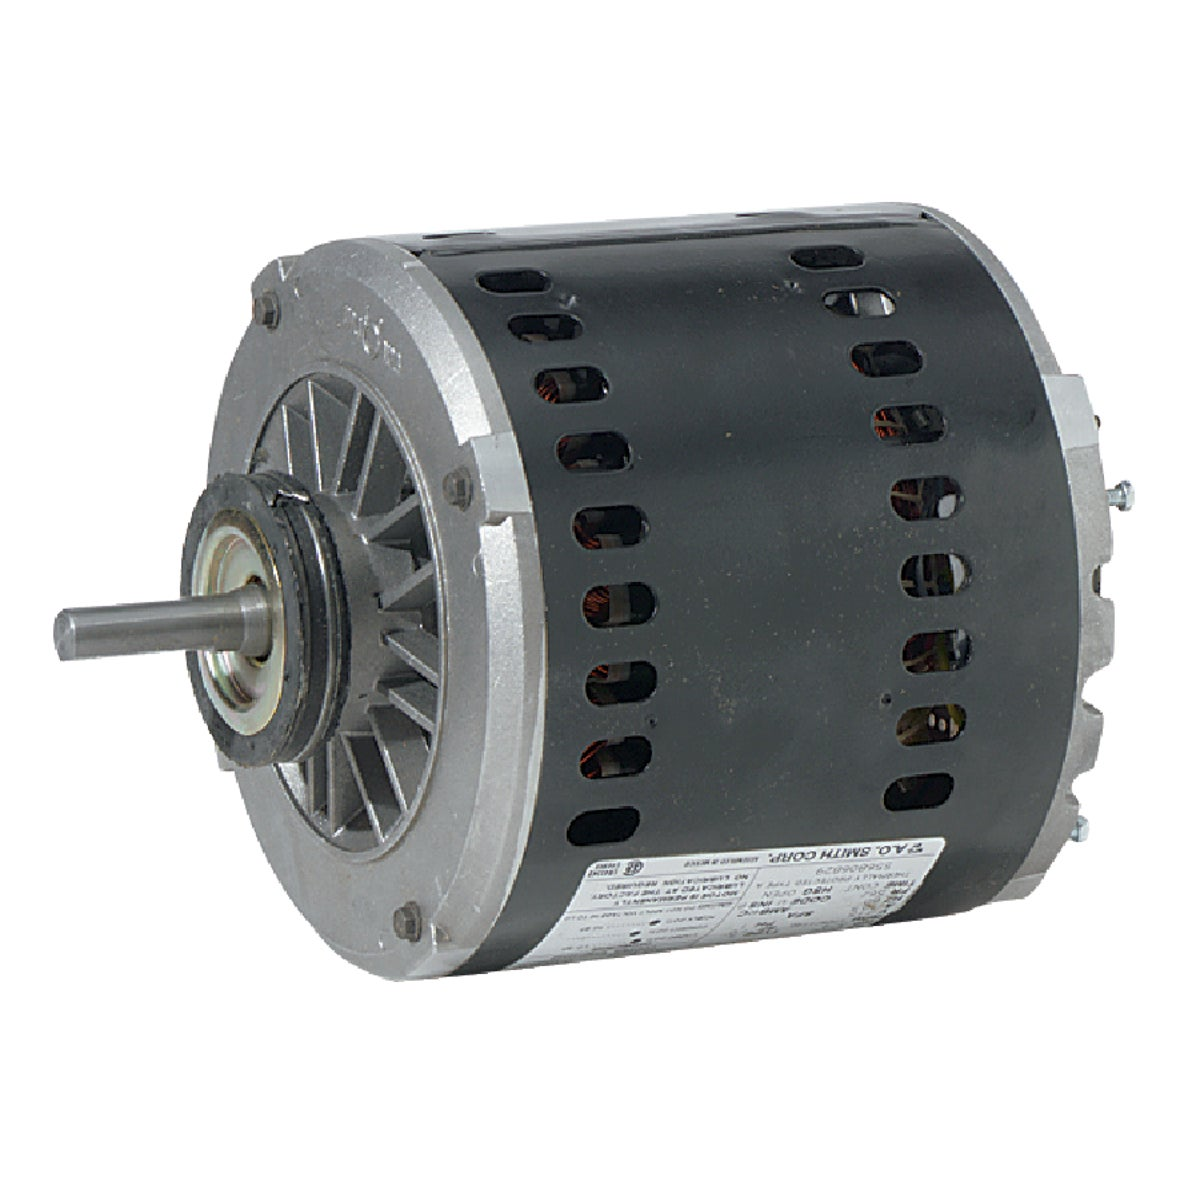 3/4HP 2 SPEED MOTOR - 2206 by Dial Manufacturing